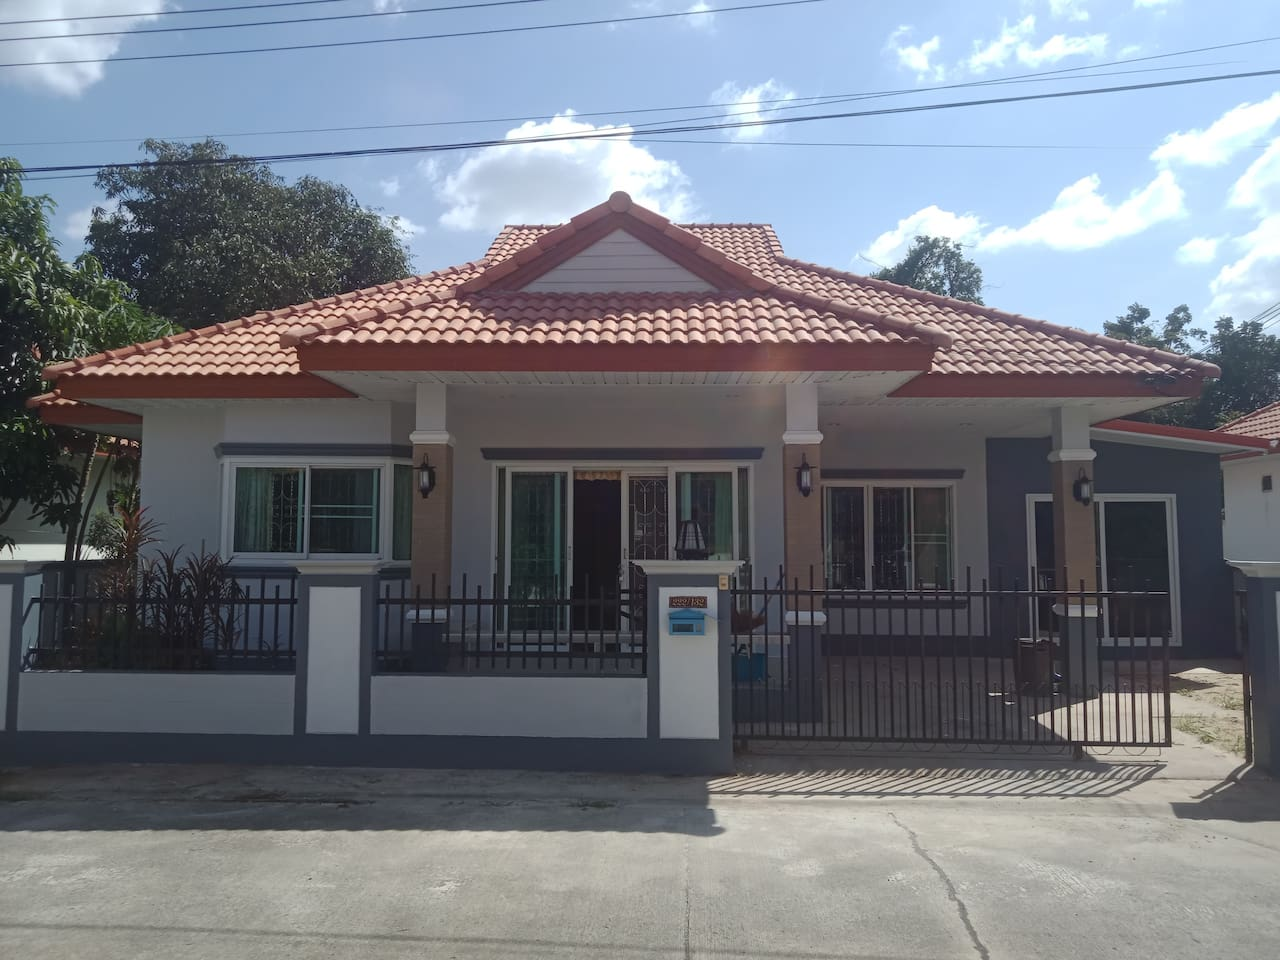 Newly painted and kitchen extension added! Garden newly renovated, see photos